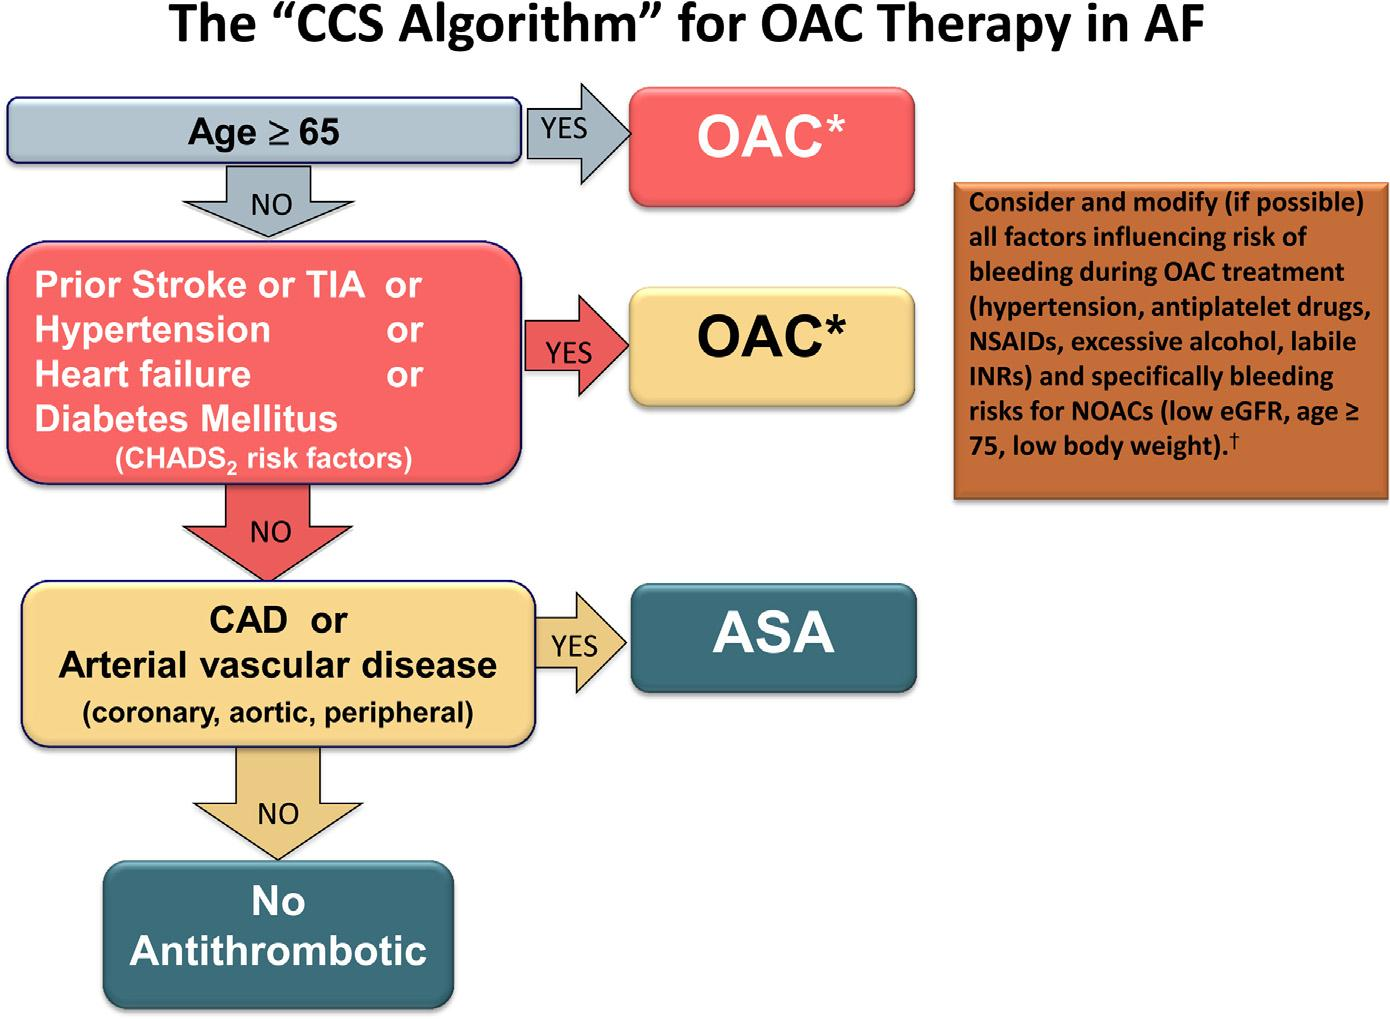 We recommend that when OAC therapy is indicated for patients with nonvalvular AF, most patients should receive dabigatran, rivaroxaban, apixaban, or